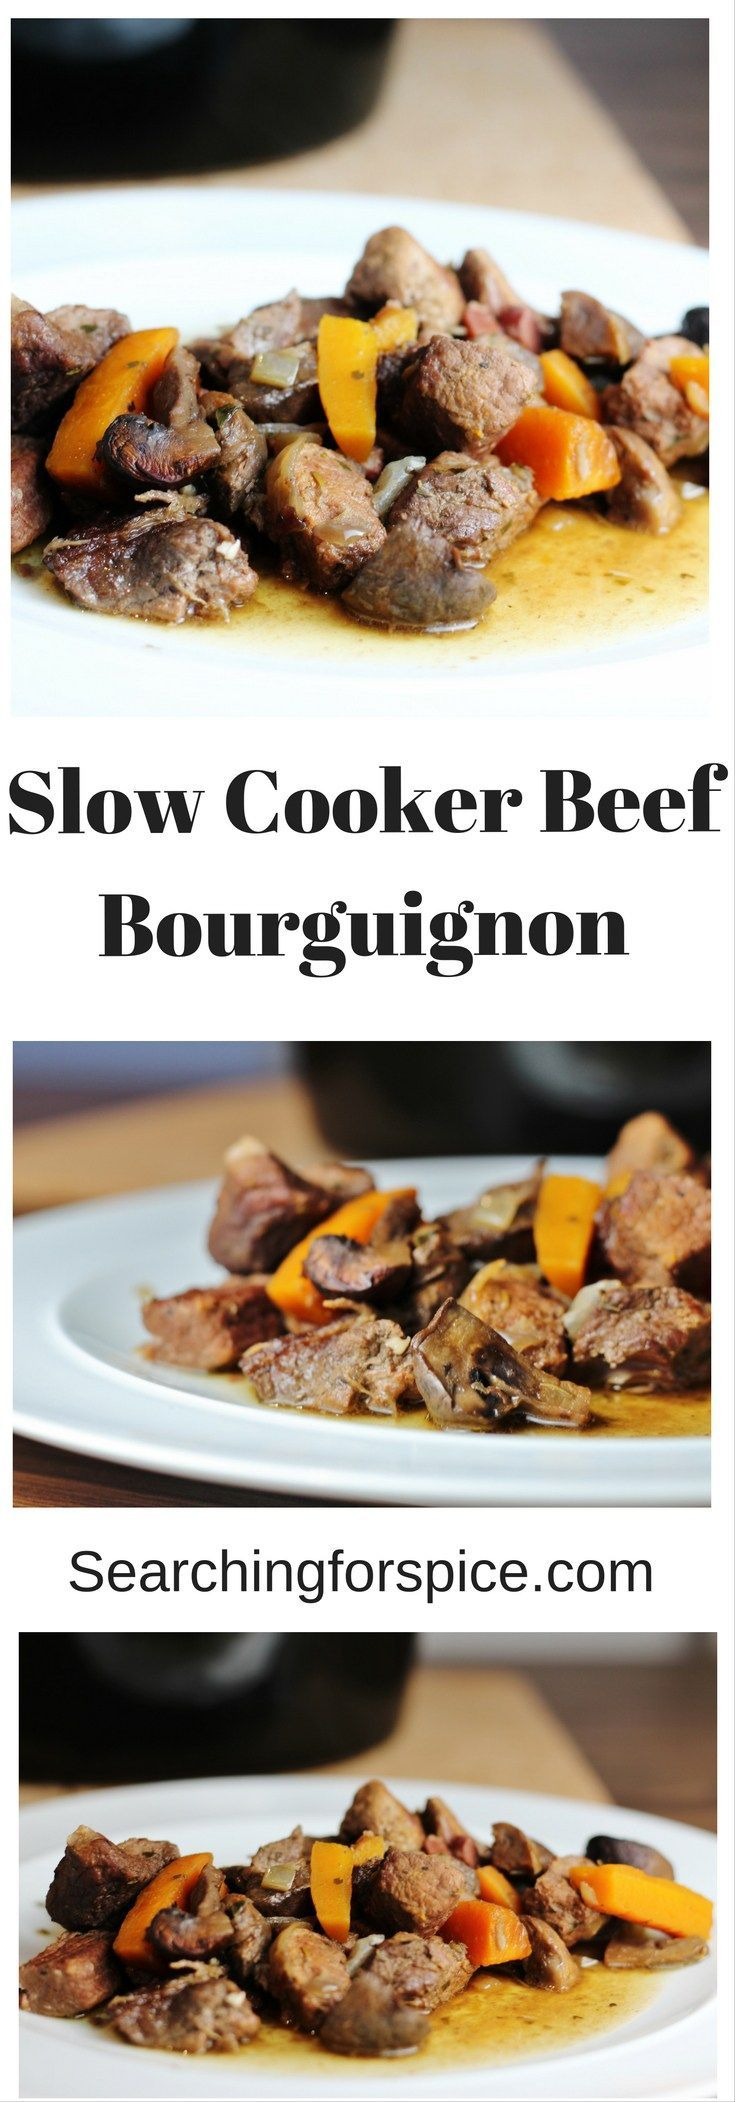 Slow Cooker Beef Bourguignon.  A delicious comforting stew that's perfect for this time of year. #Slowcooker #recipe #beef